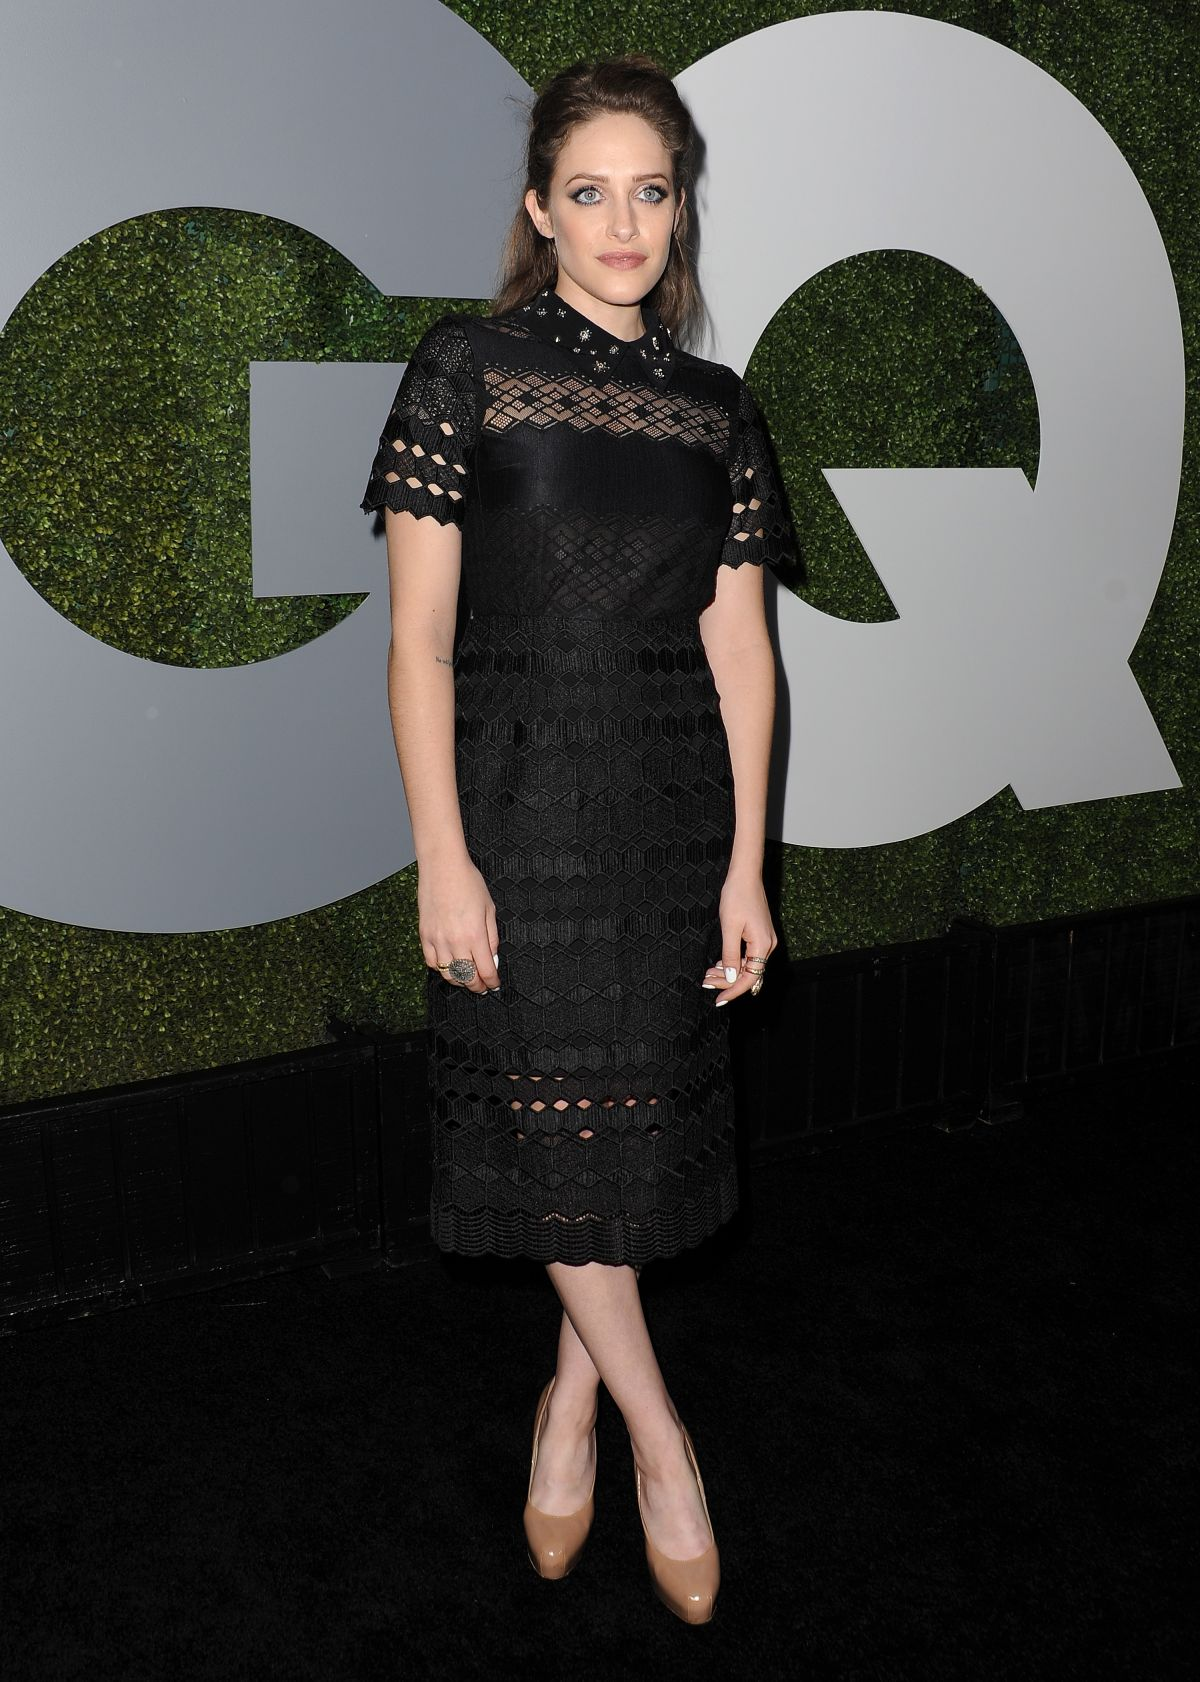 CARLY CHAIKIN at GQ Men of the Year Awards 2016 in West Hollywood 12/08/2016